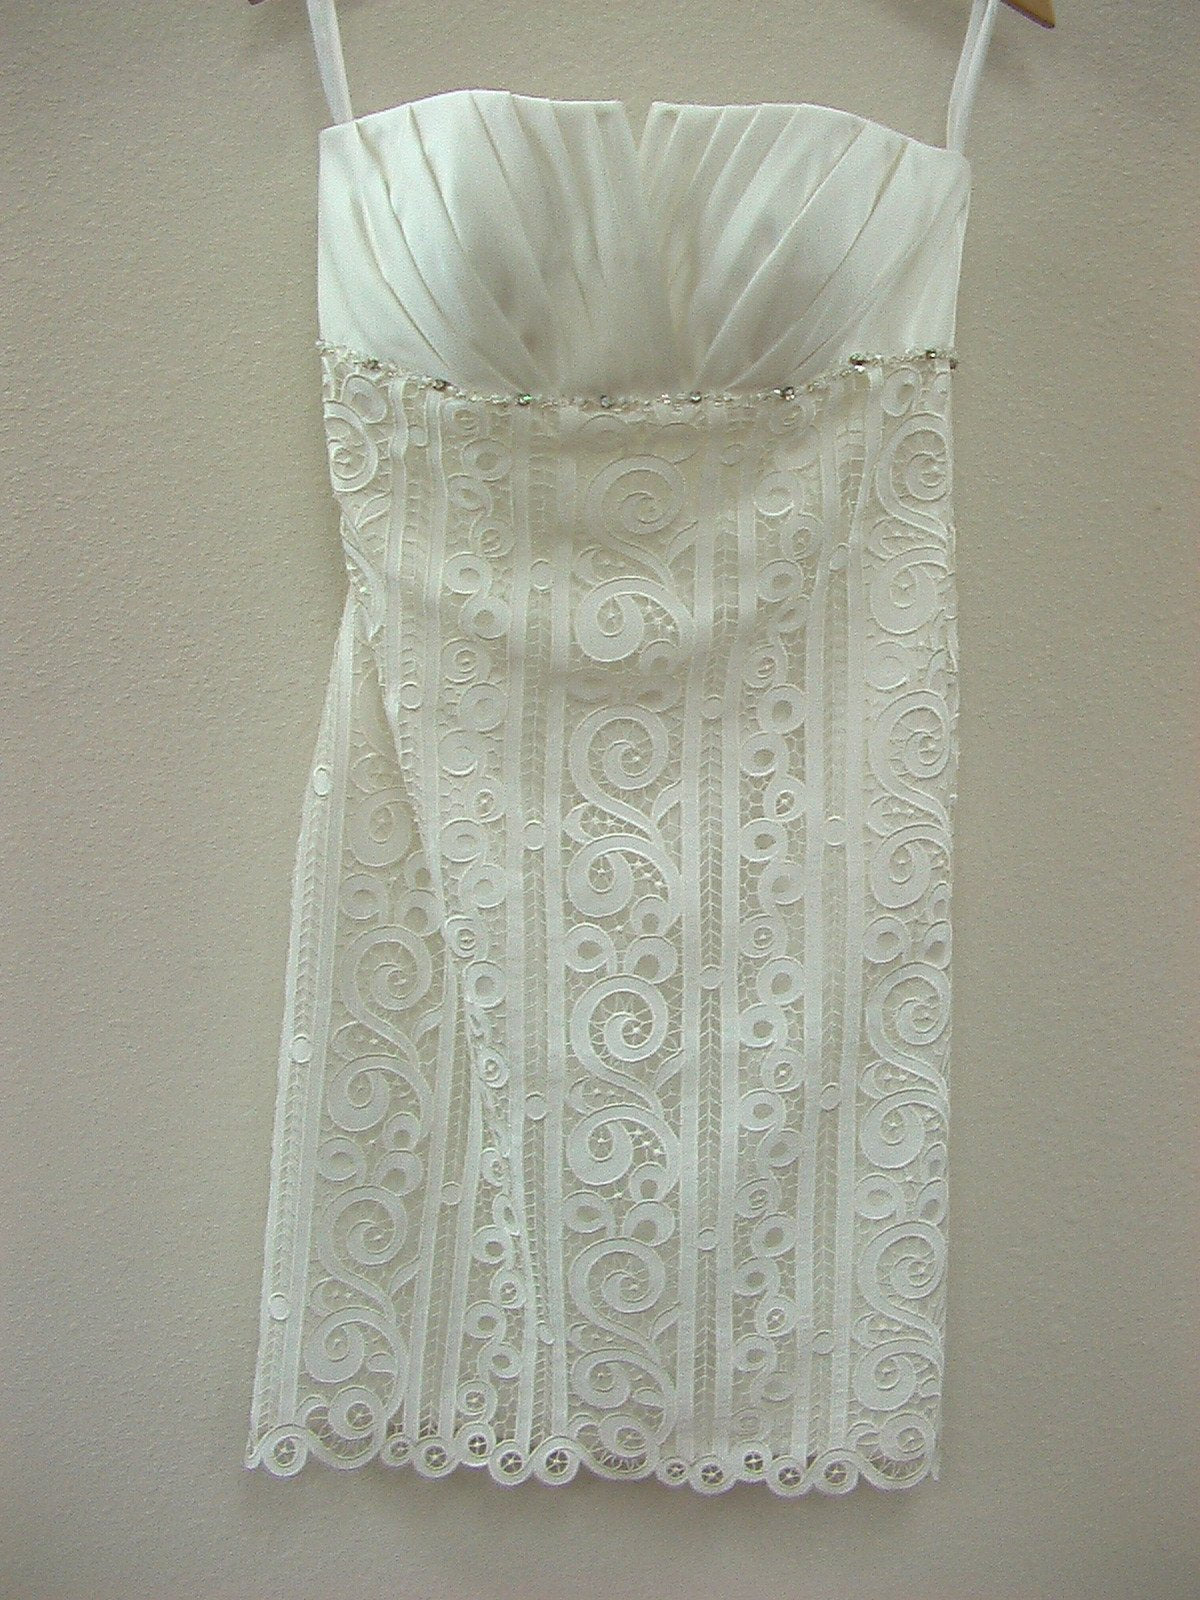 Dere Kiang 11067 Ivory/Silver size 8 In Stock Wedding Dress - Tom's Bridal